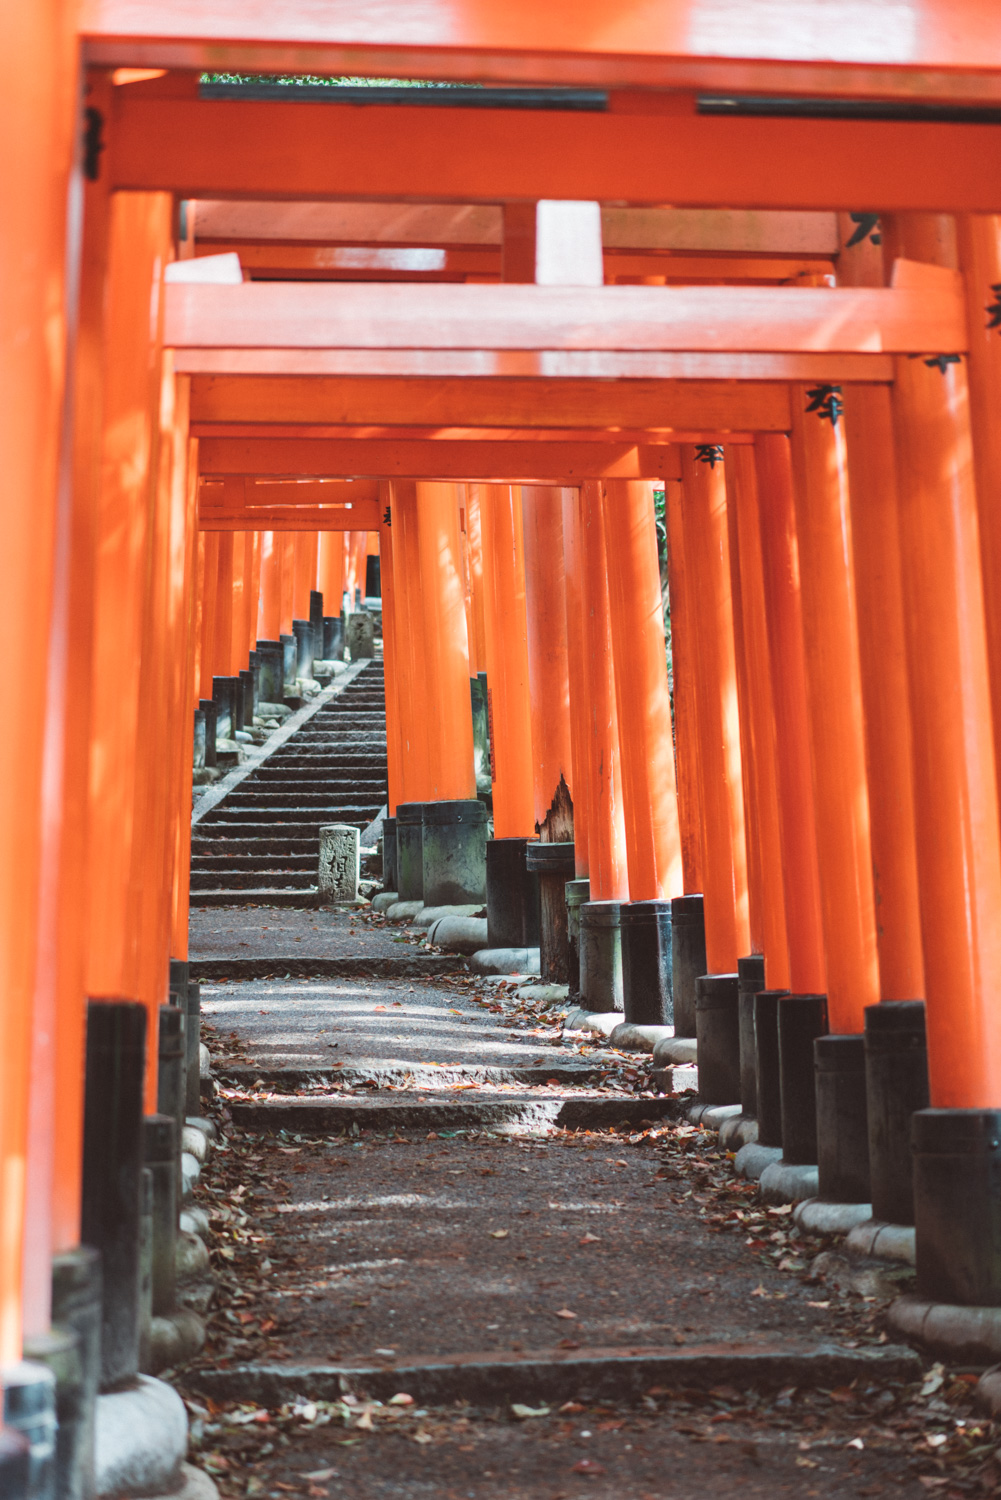 Fushimi Inari Shrine, kyoto [David Tan]